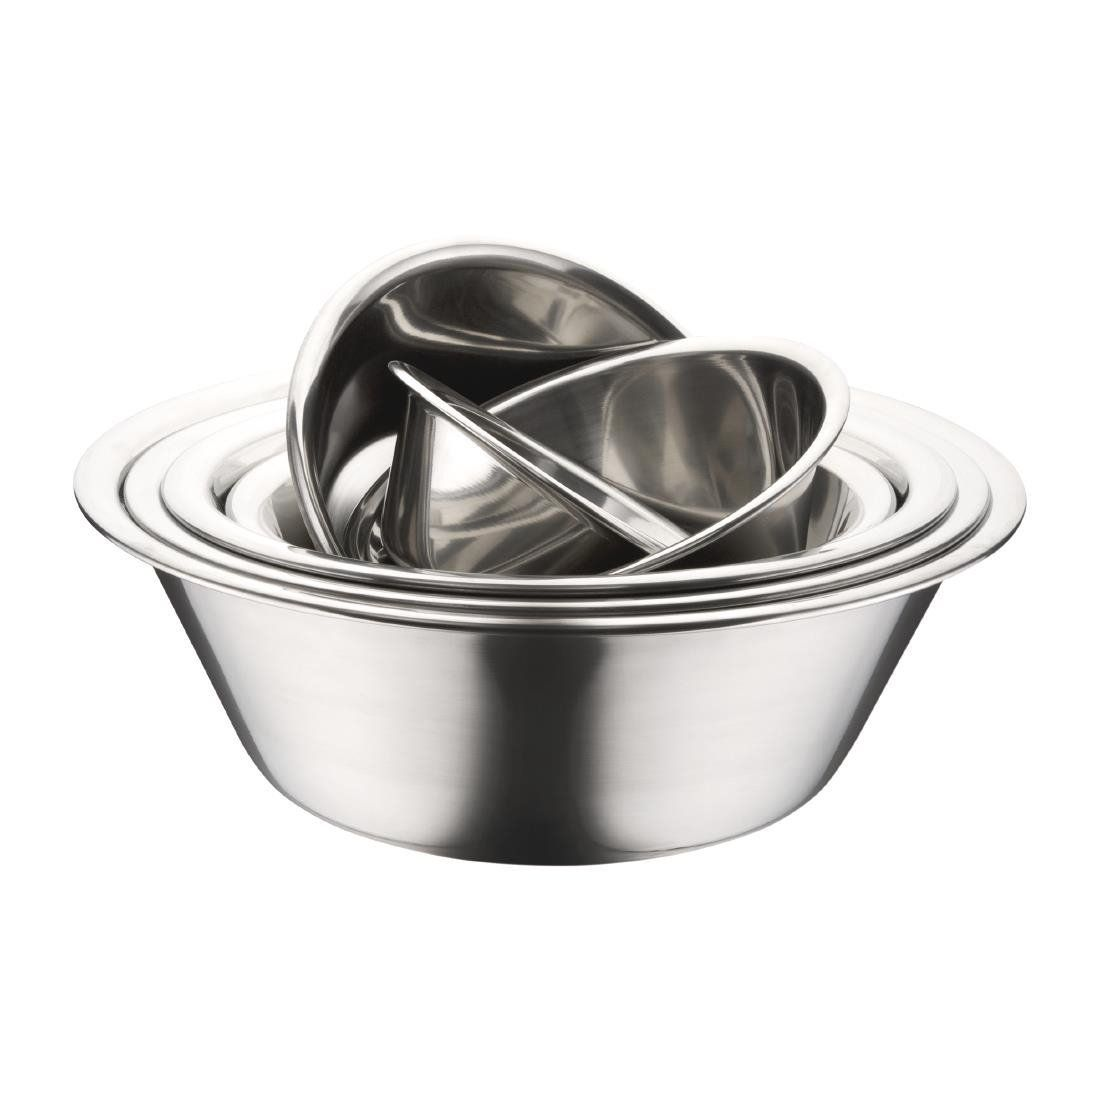 Commercial Mixing Bowl Stainless 9 1 2 Dia Capacity 67 Oz Want Additional Info Click On The Image This Is An Affiliate L Mixing Bowl Bowl Mixing Bowls